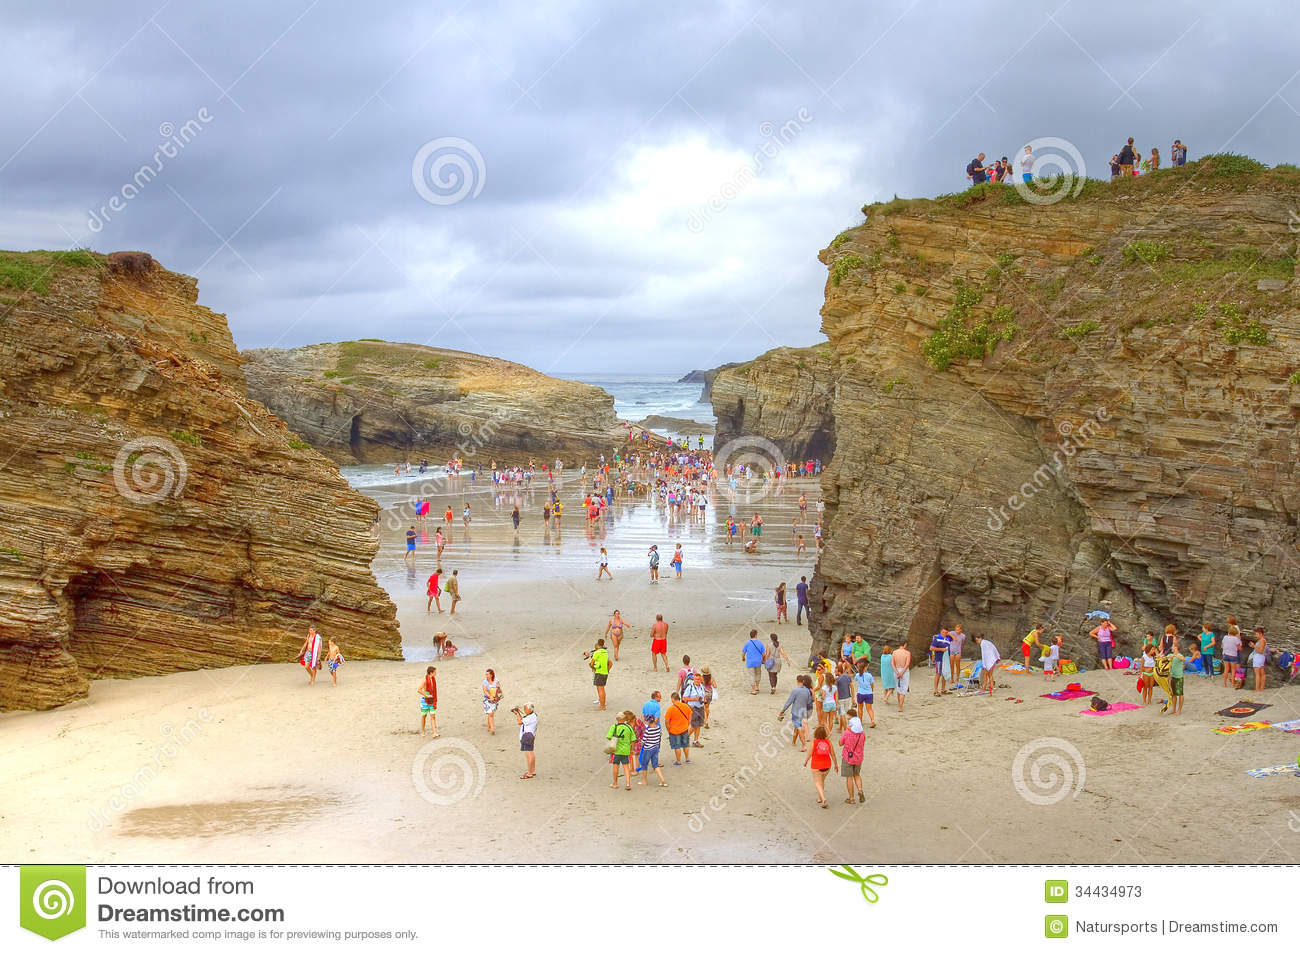 As Catedrais Beach, Spain Editorial Stock Photo - Image: 34434973